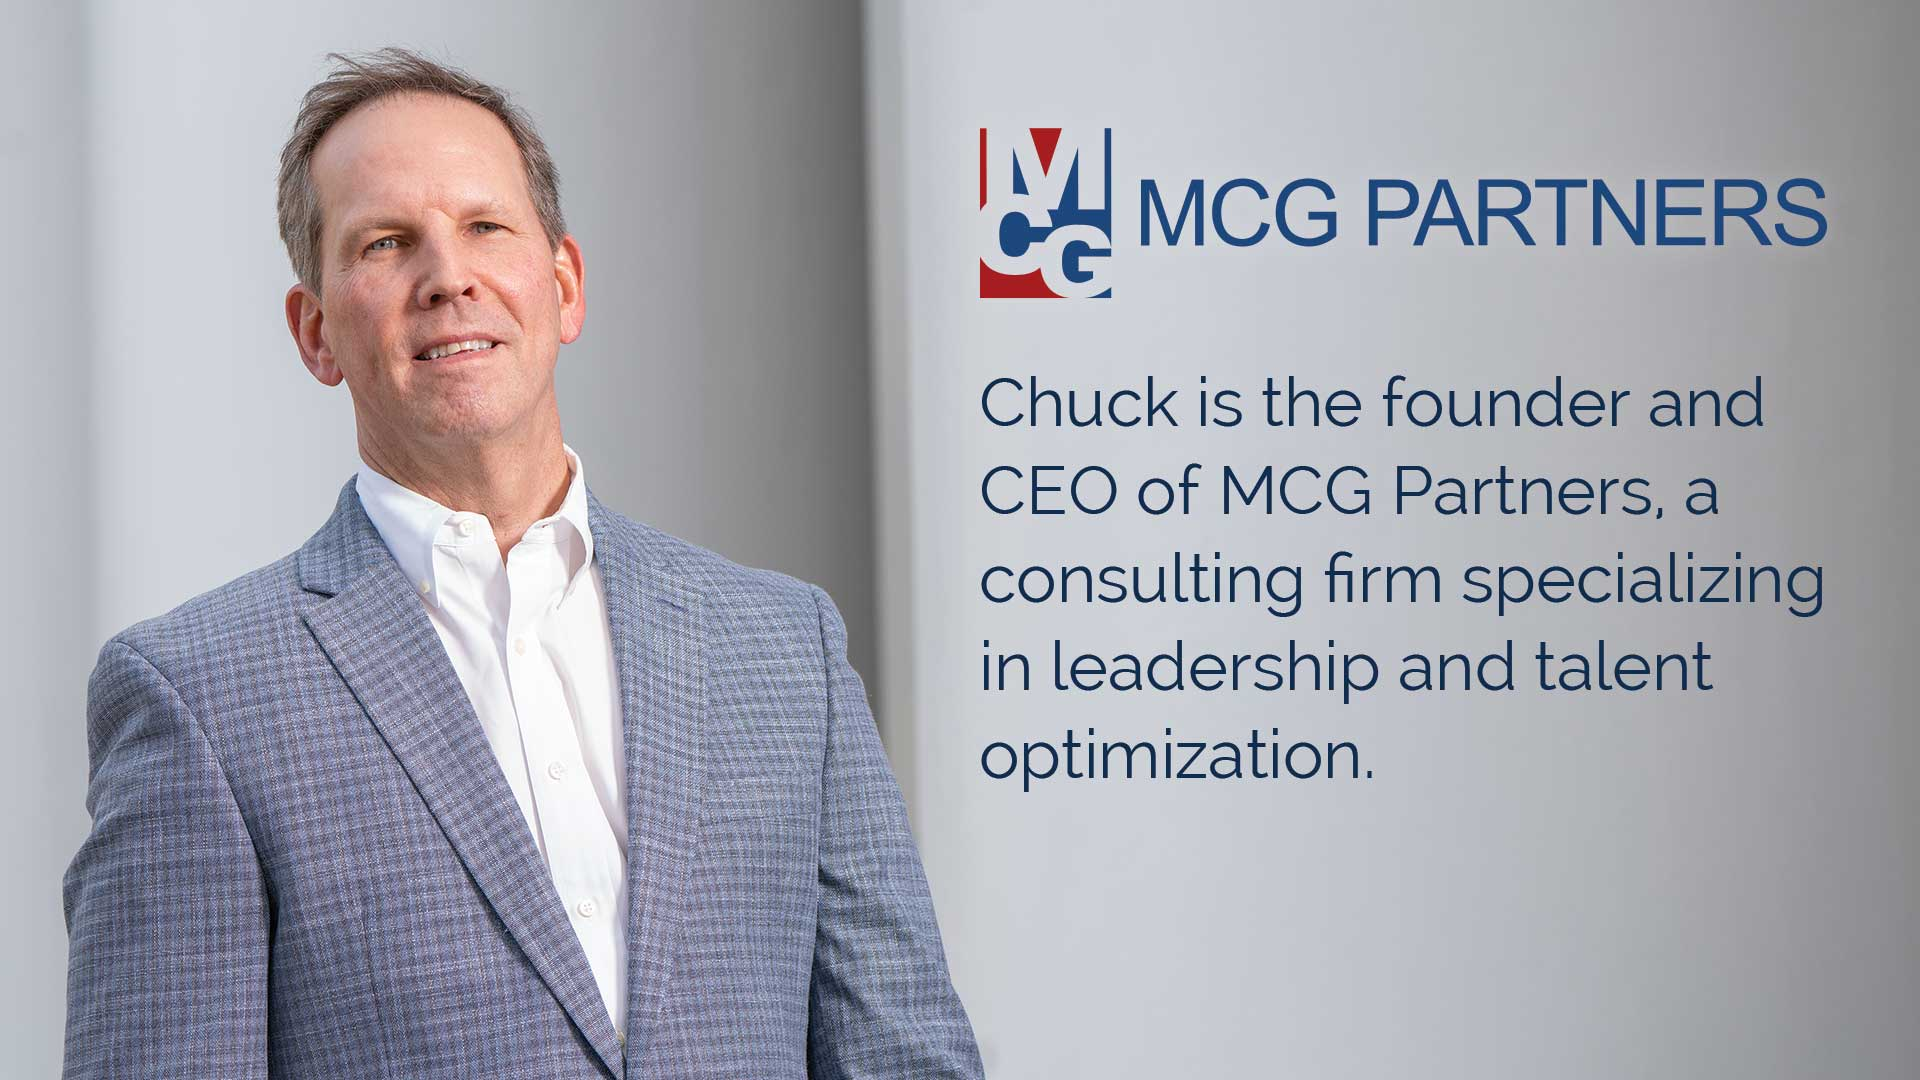 Chuck is the founder and CEO of MCG Partners, a consulting firm specializing in leadership and talent optimization.